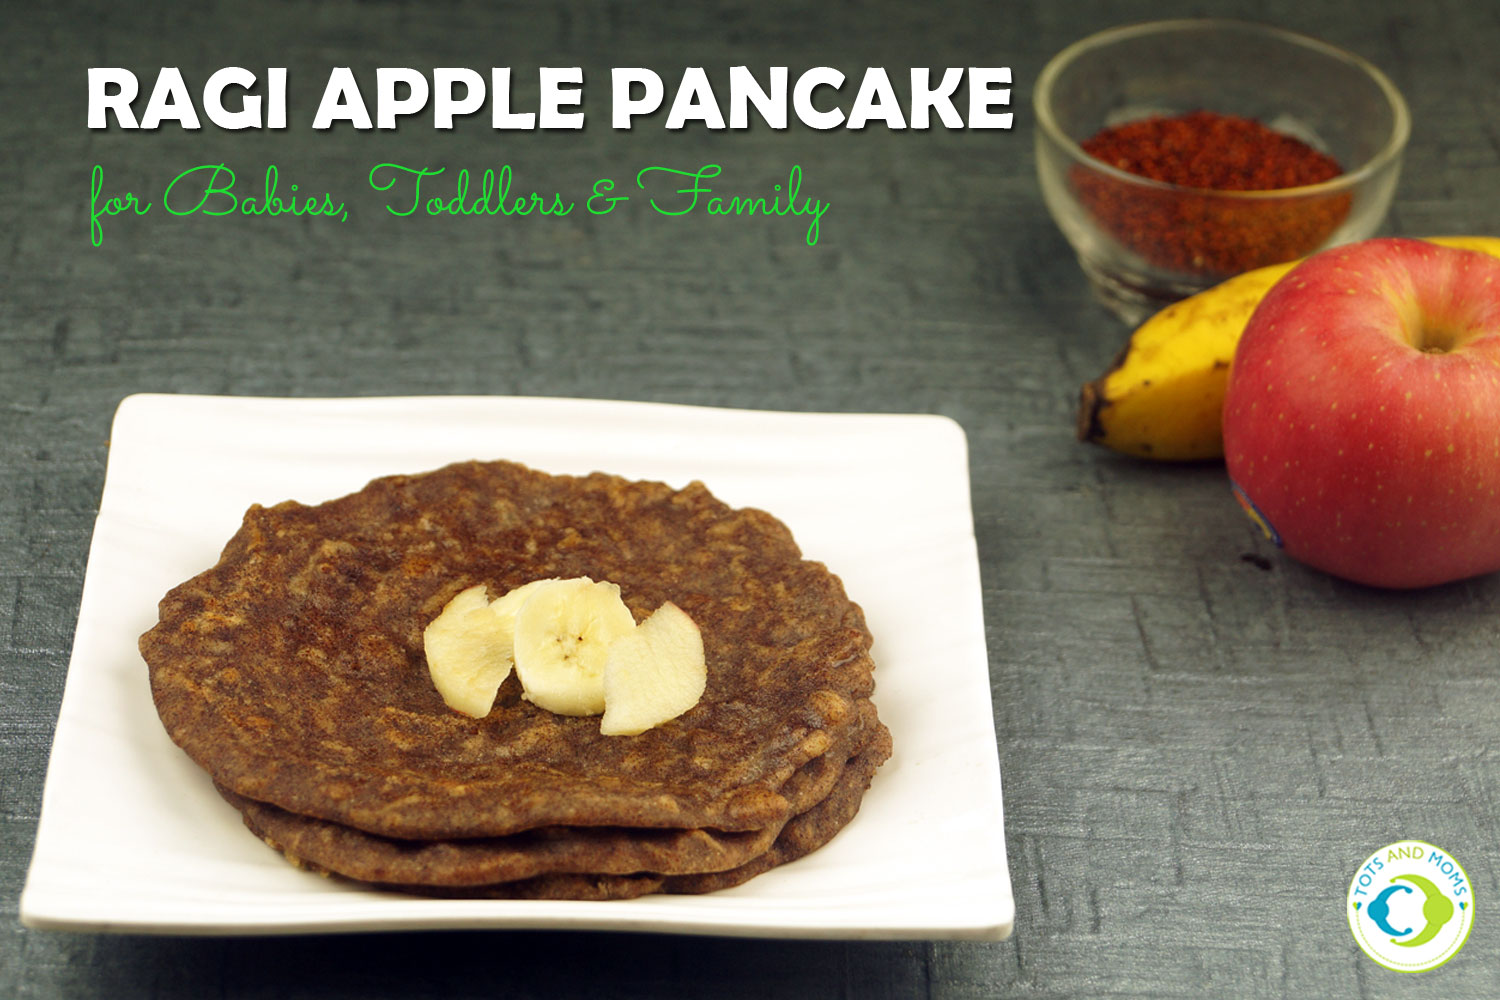 RAGI APPLE PANCAKES for Babies, Toddlers, Kids & Family